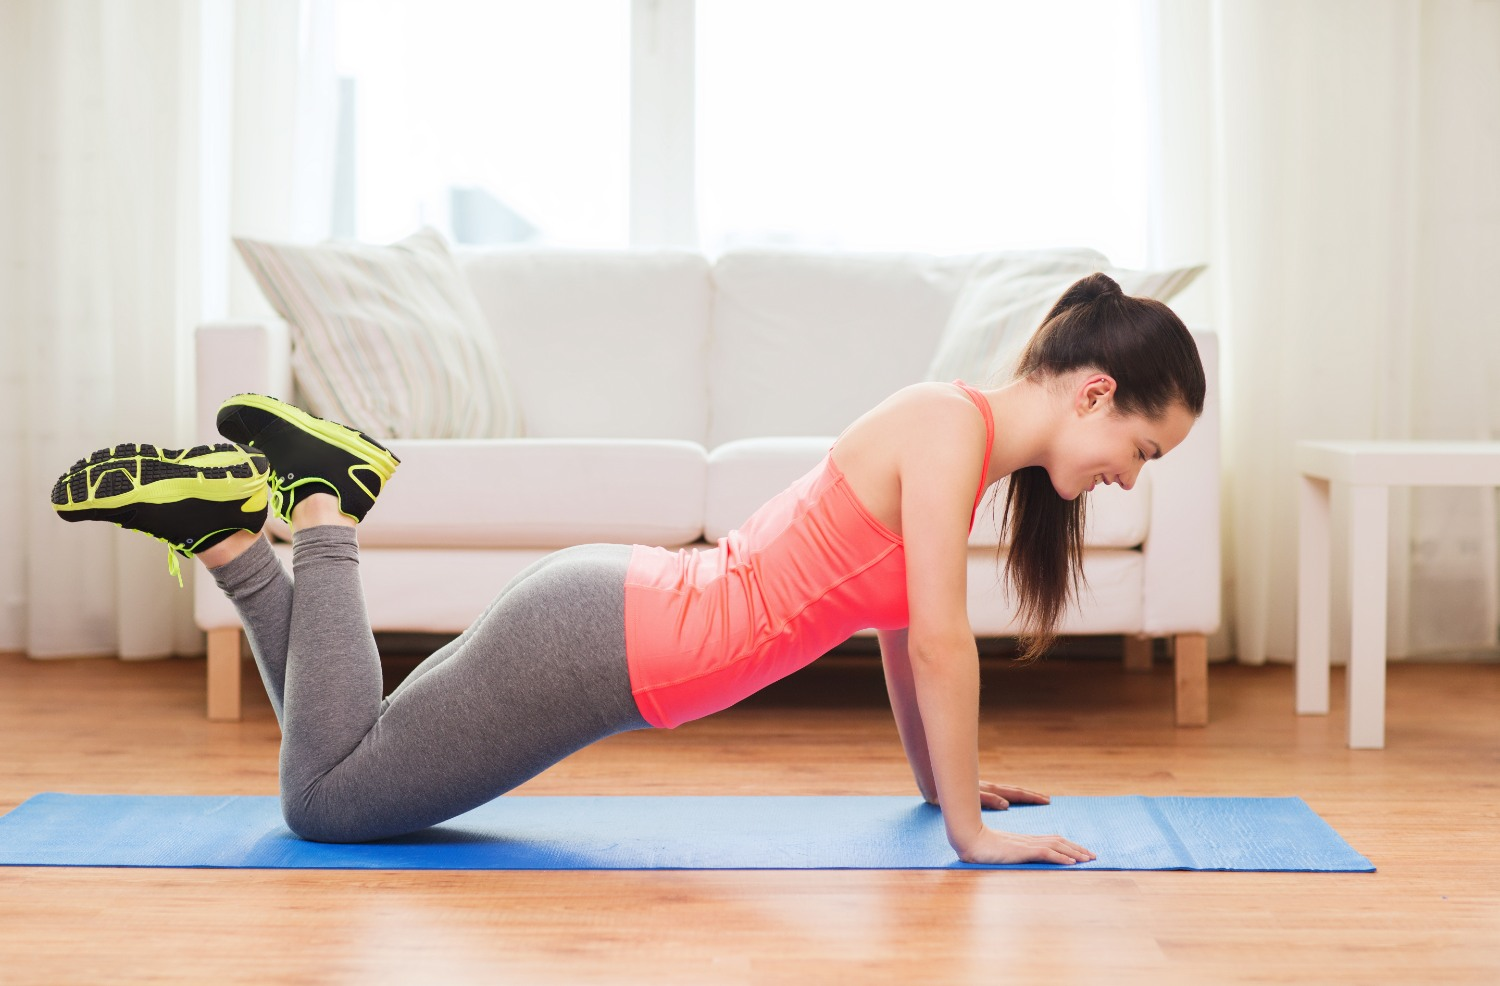 Assisted push-up | Shutterstock